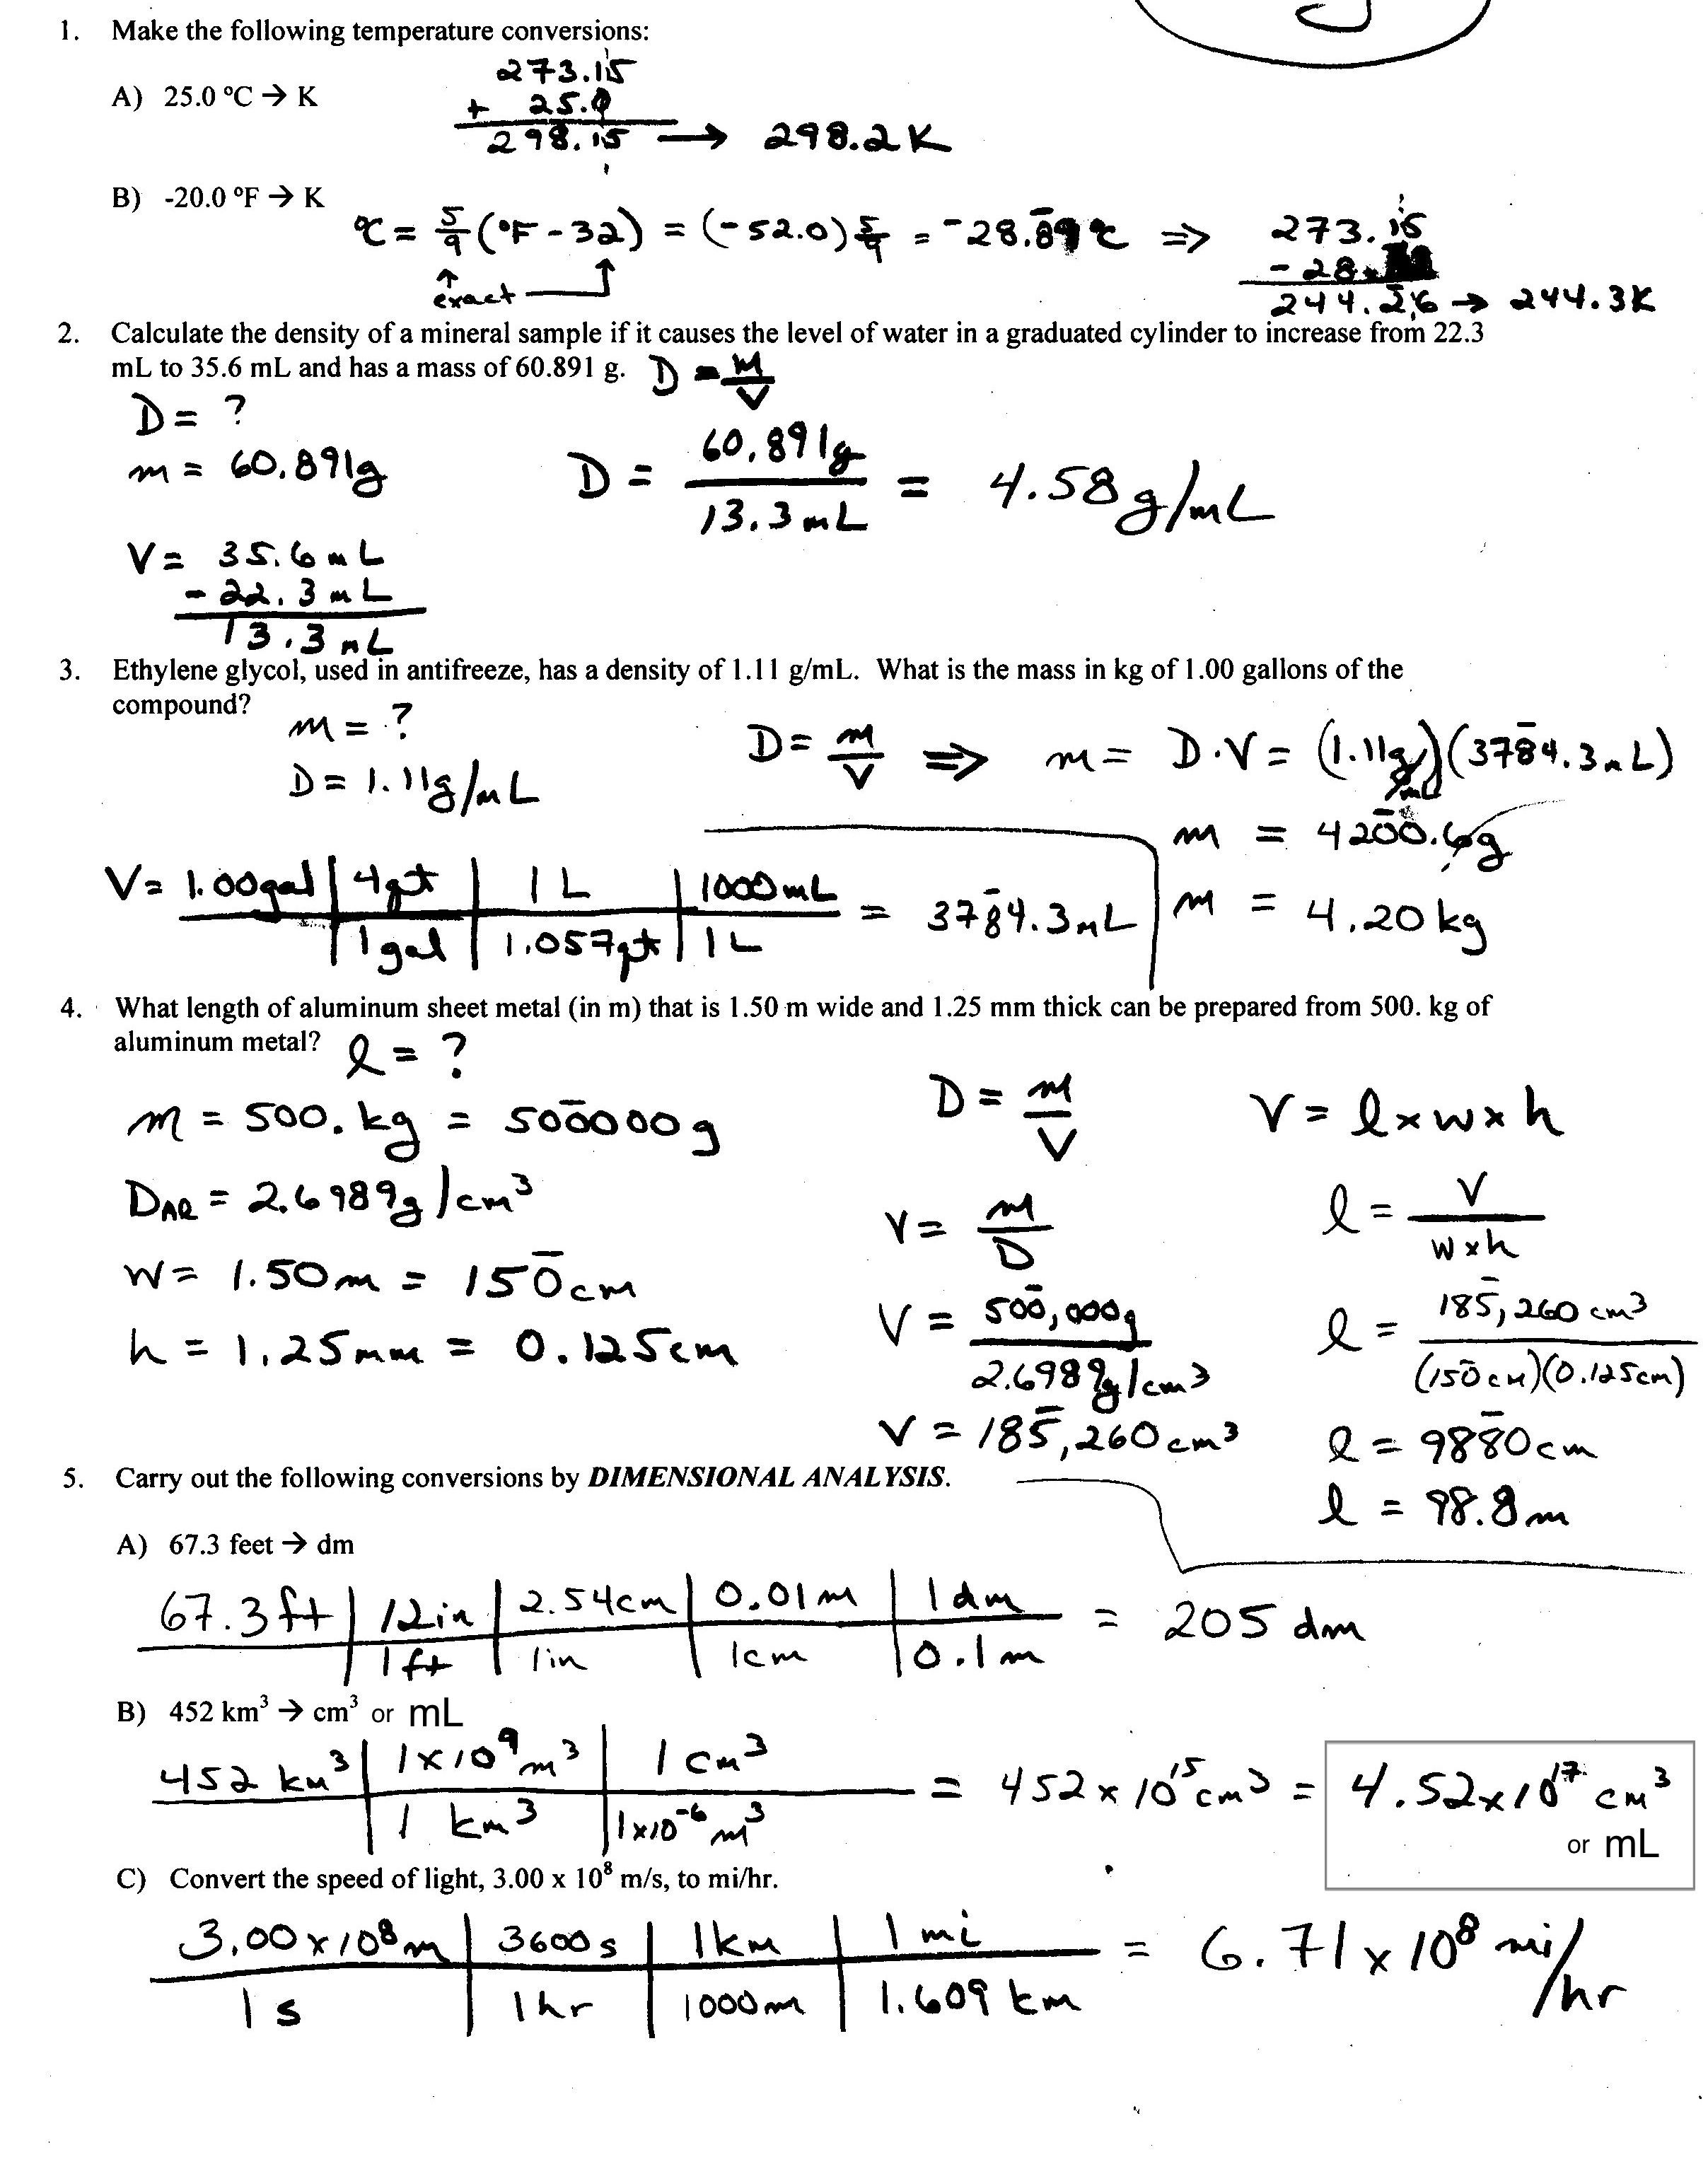 Dimensionalysis Worksheet Answers